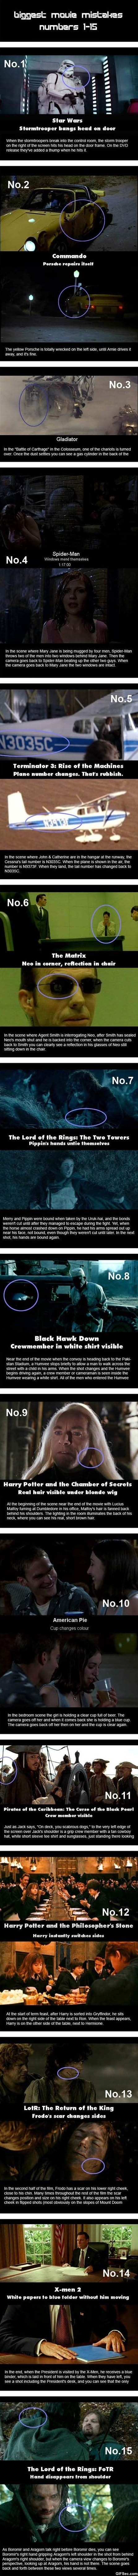 the-biggest-movie-mistakes